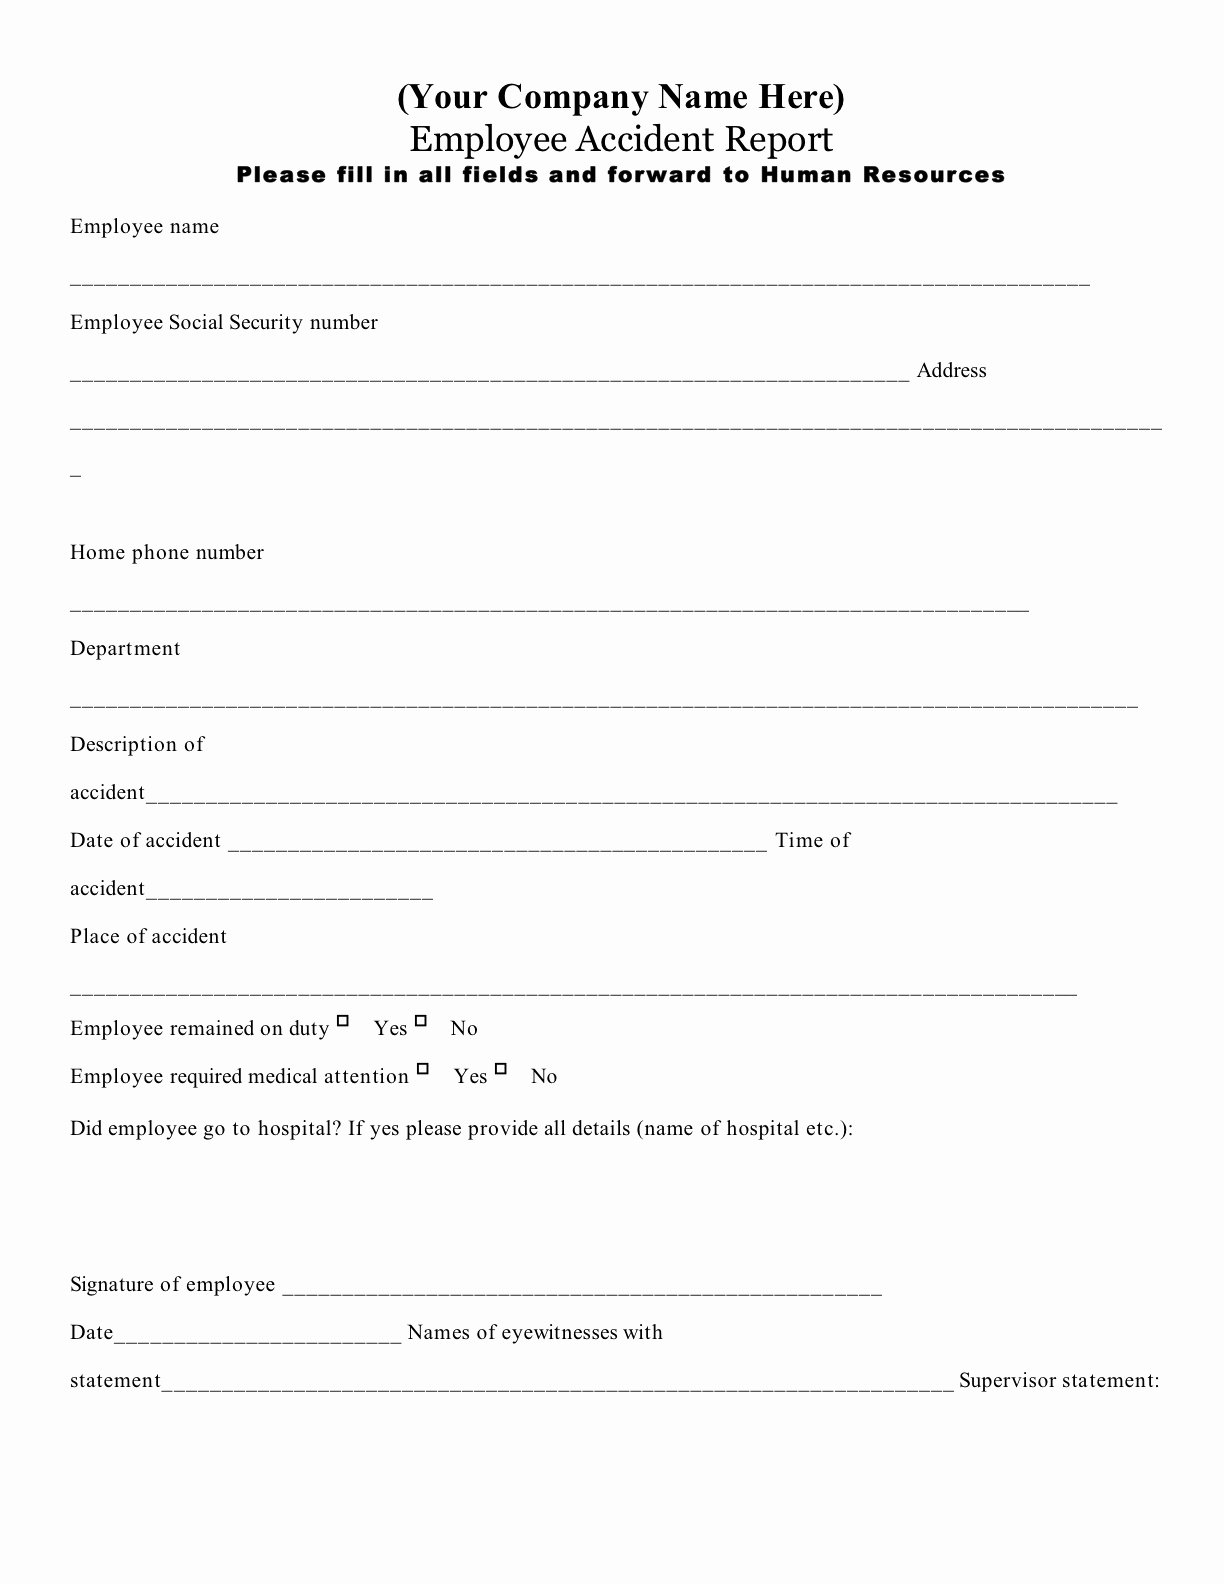 post employee accident report form